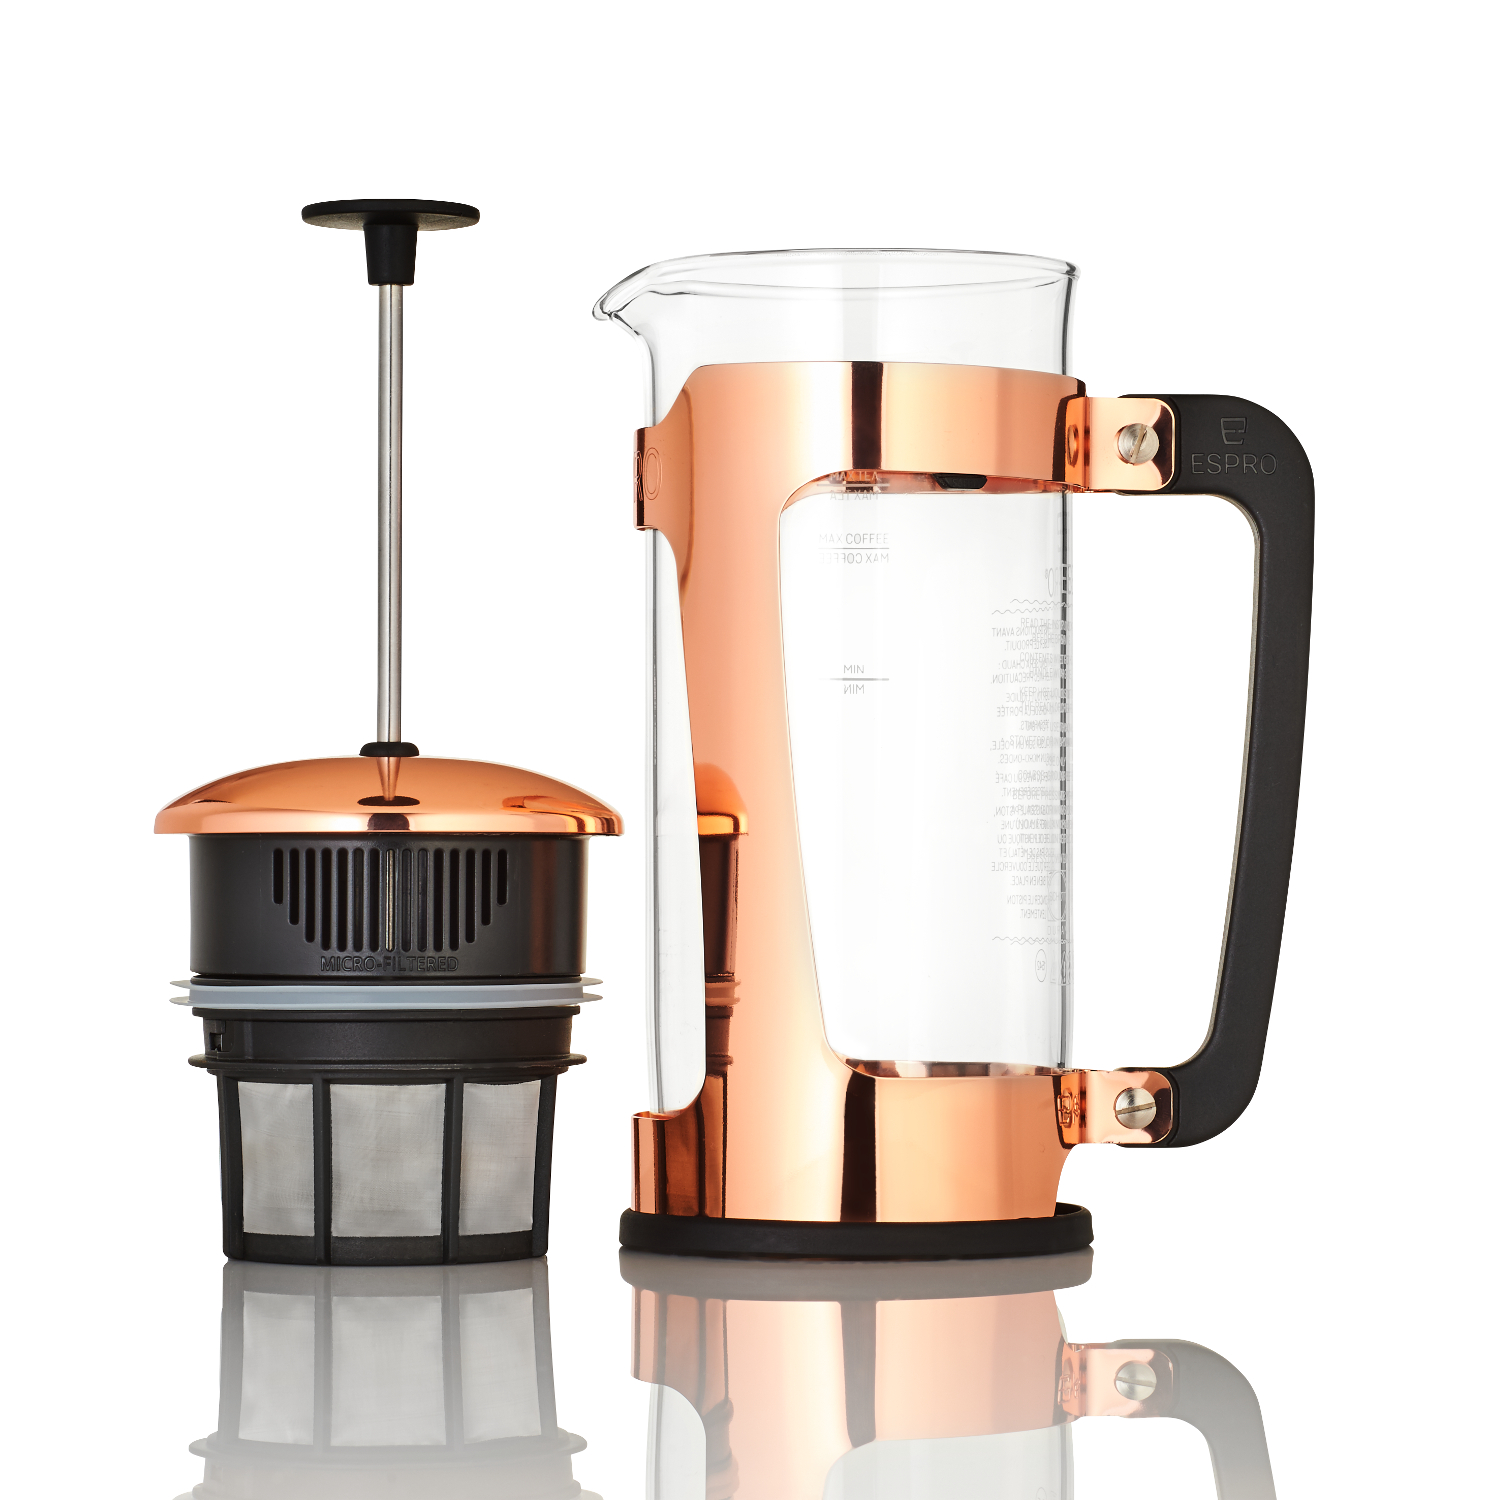 ESPRO P5 Coffee Press